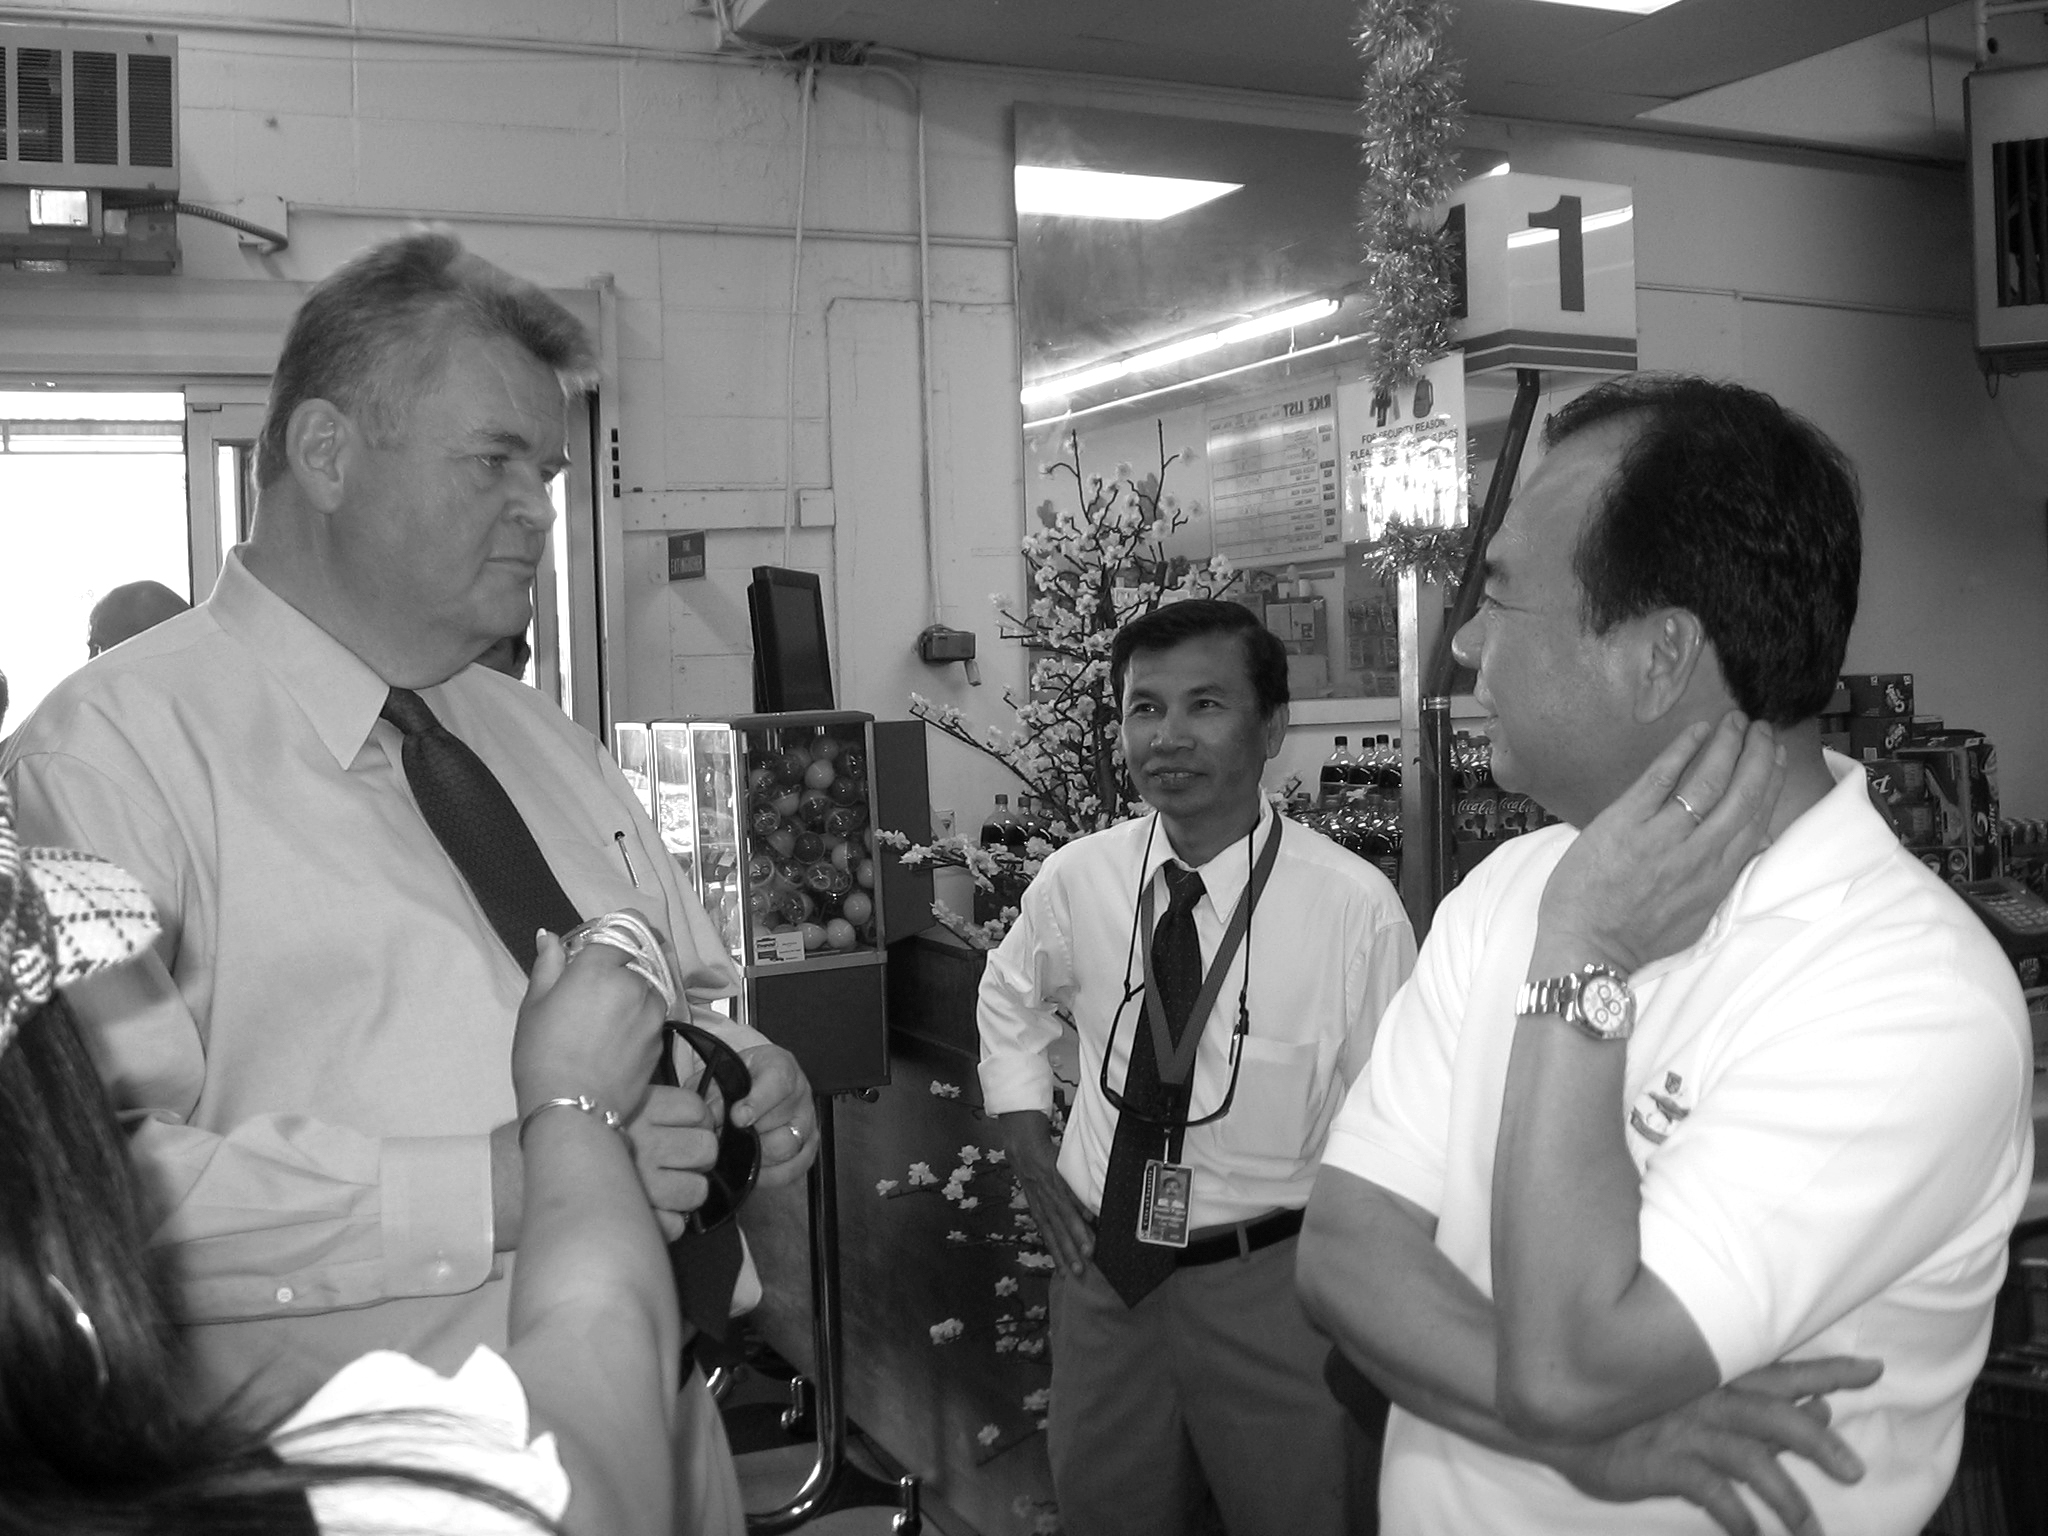 Mayor Greg Nickels, left, meets with Viet Wah grocery store owner Duc Tran, right. -- International Examiner Photo, August 8 & September 2, 2008